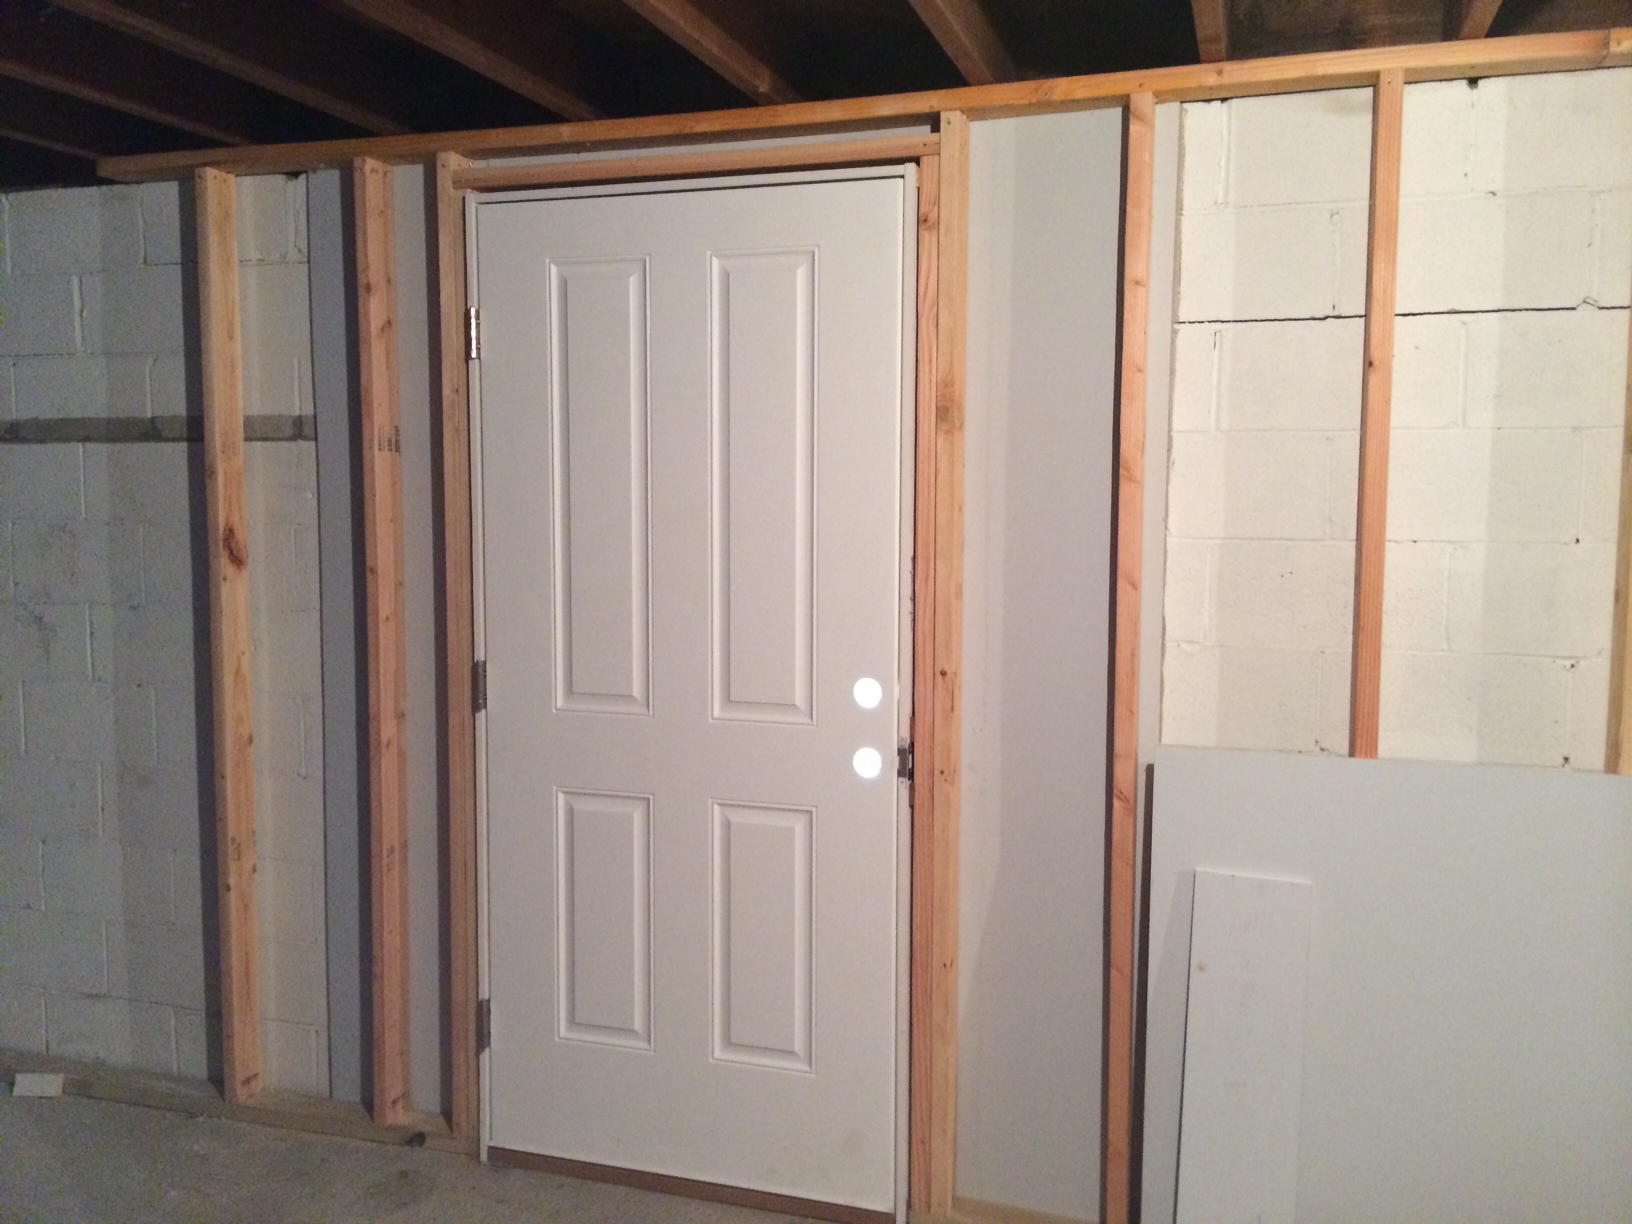 Renovation Update Doors Trim Primer And More Foam